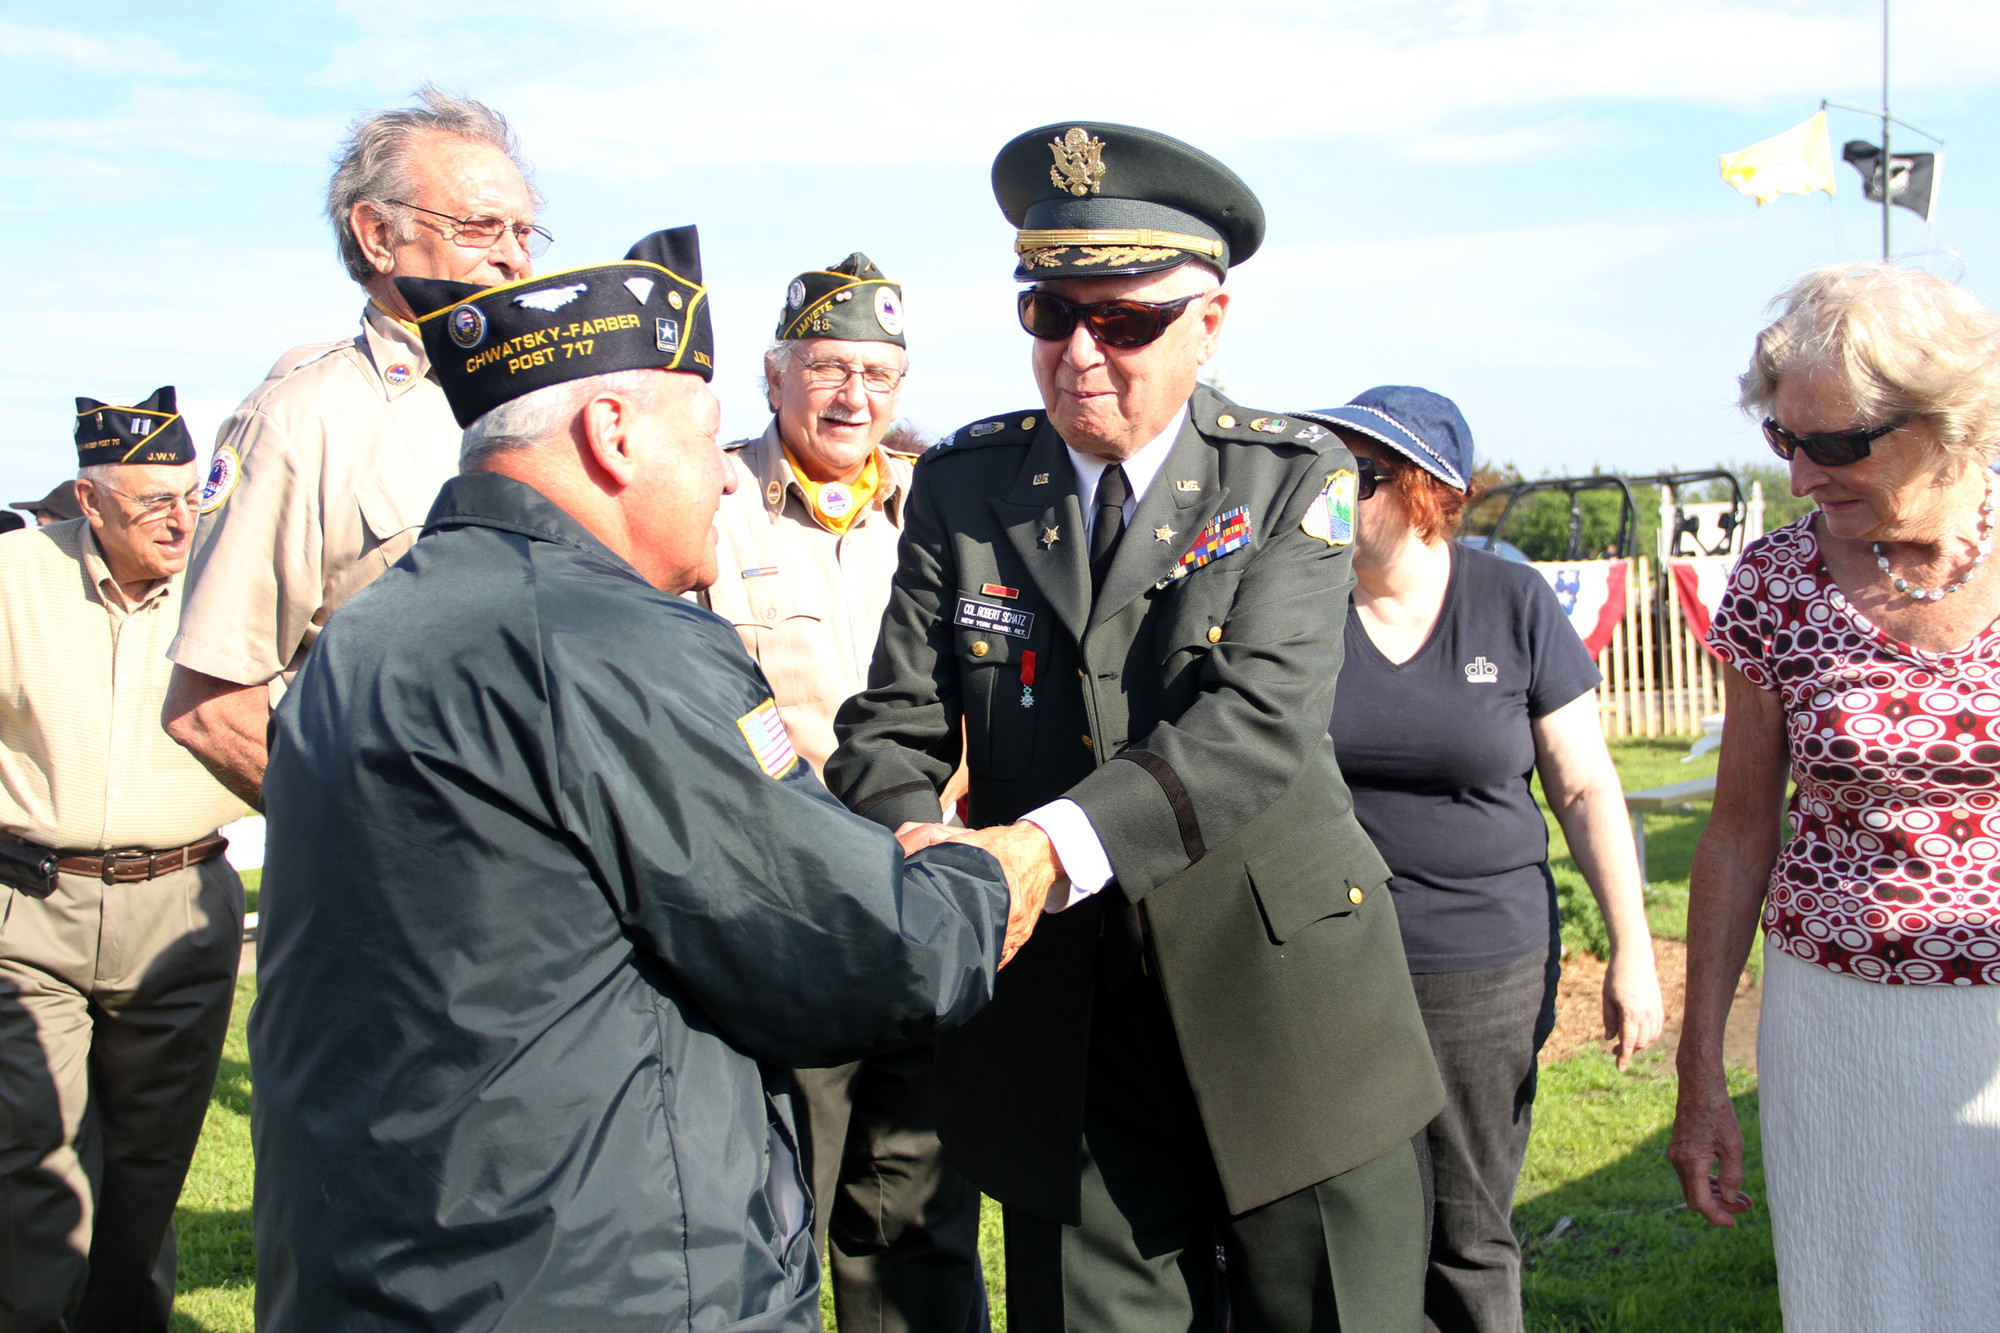 Robert Schatz of Oceanside is congratulated by Oceanside Chaplain Leonard Levine.